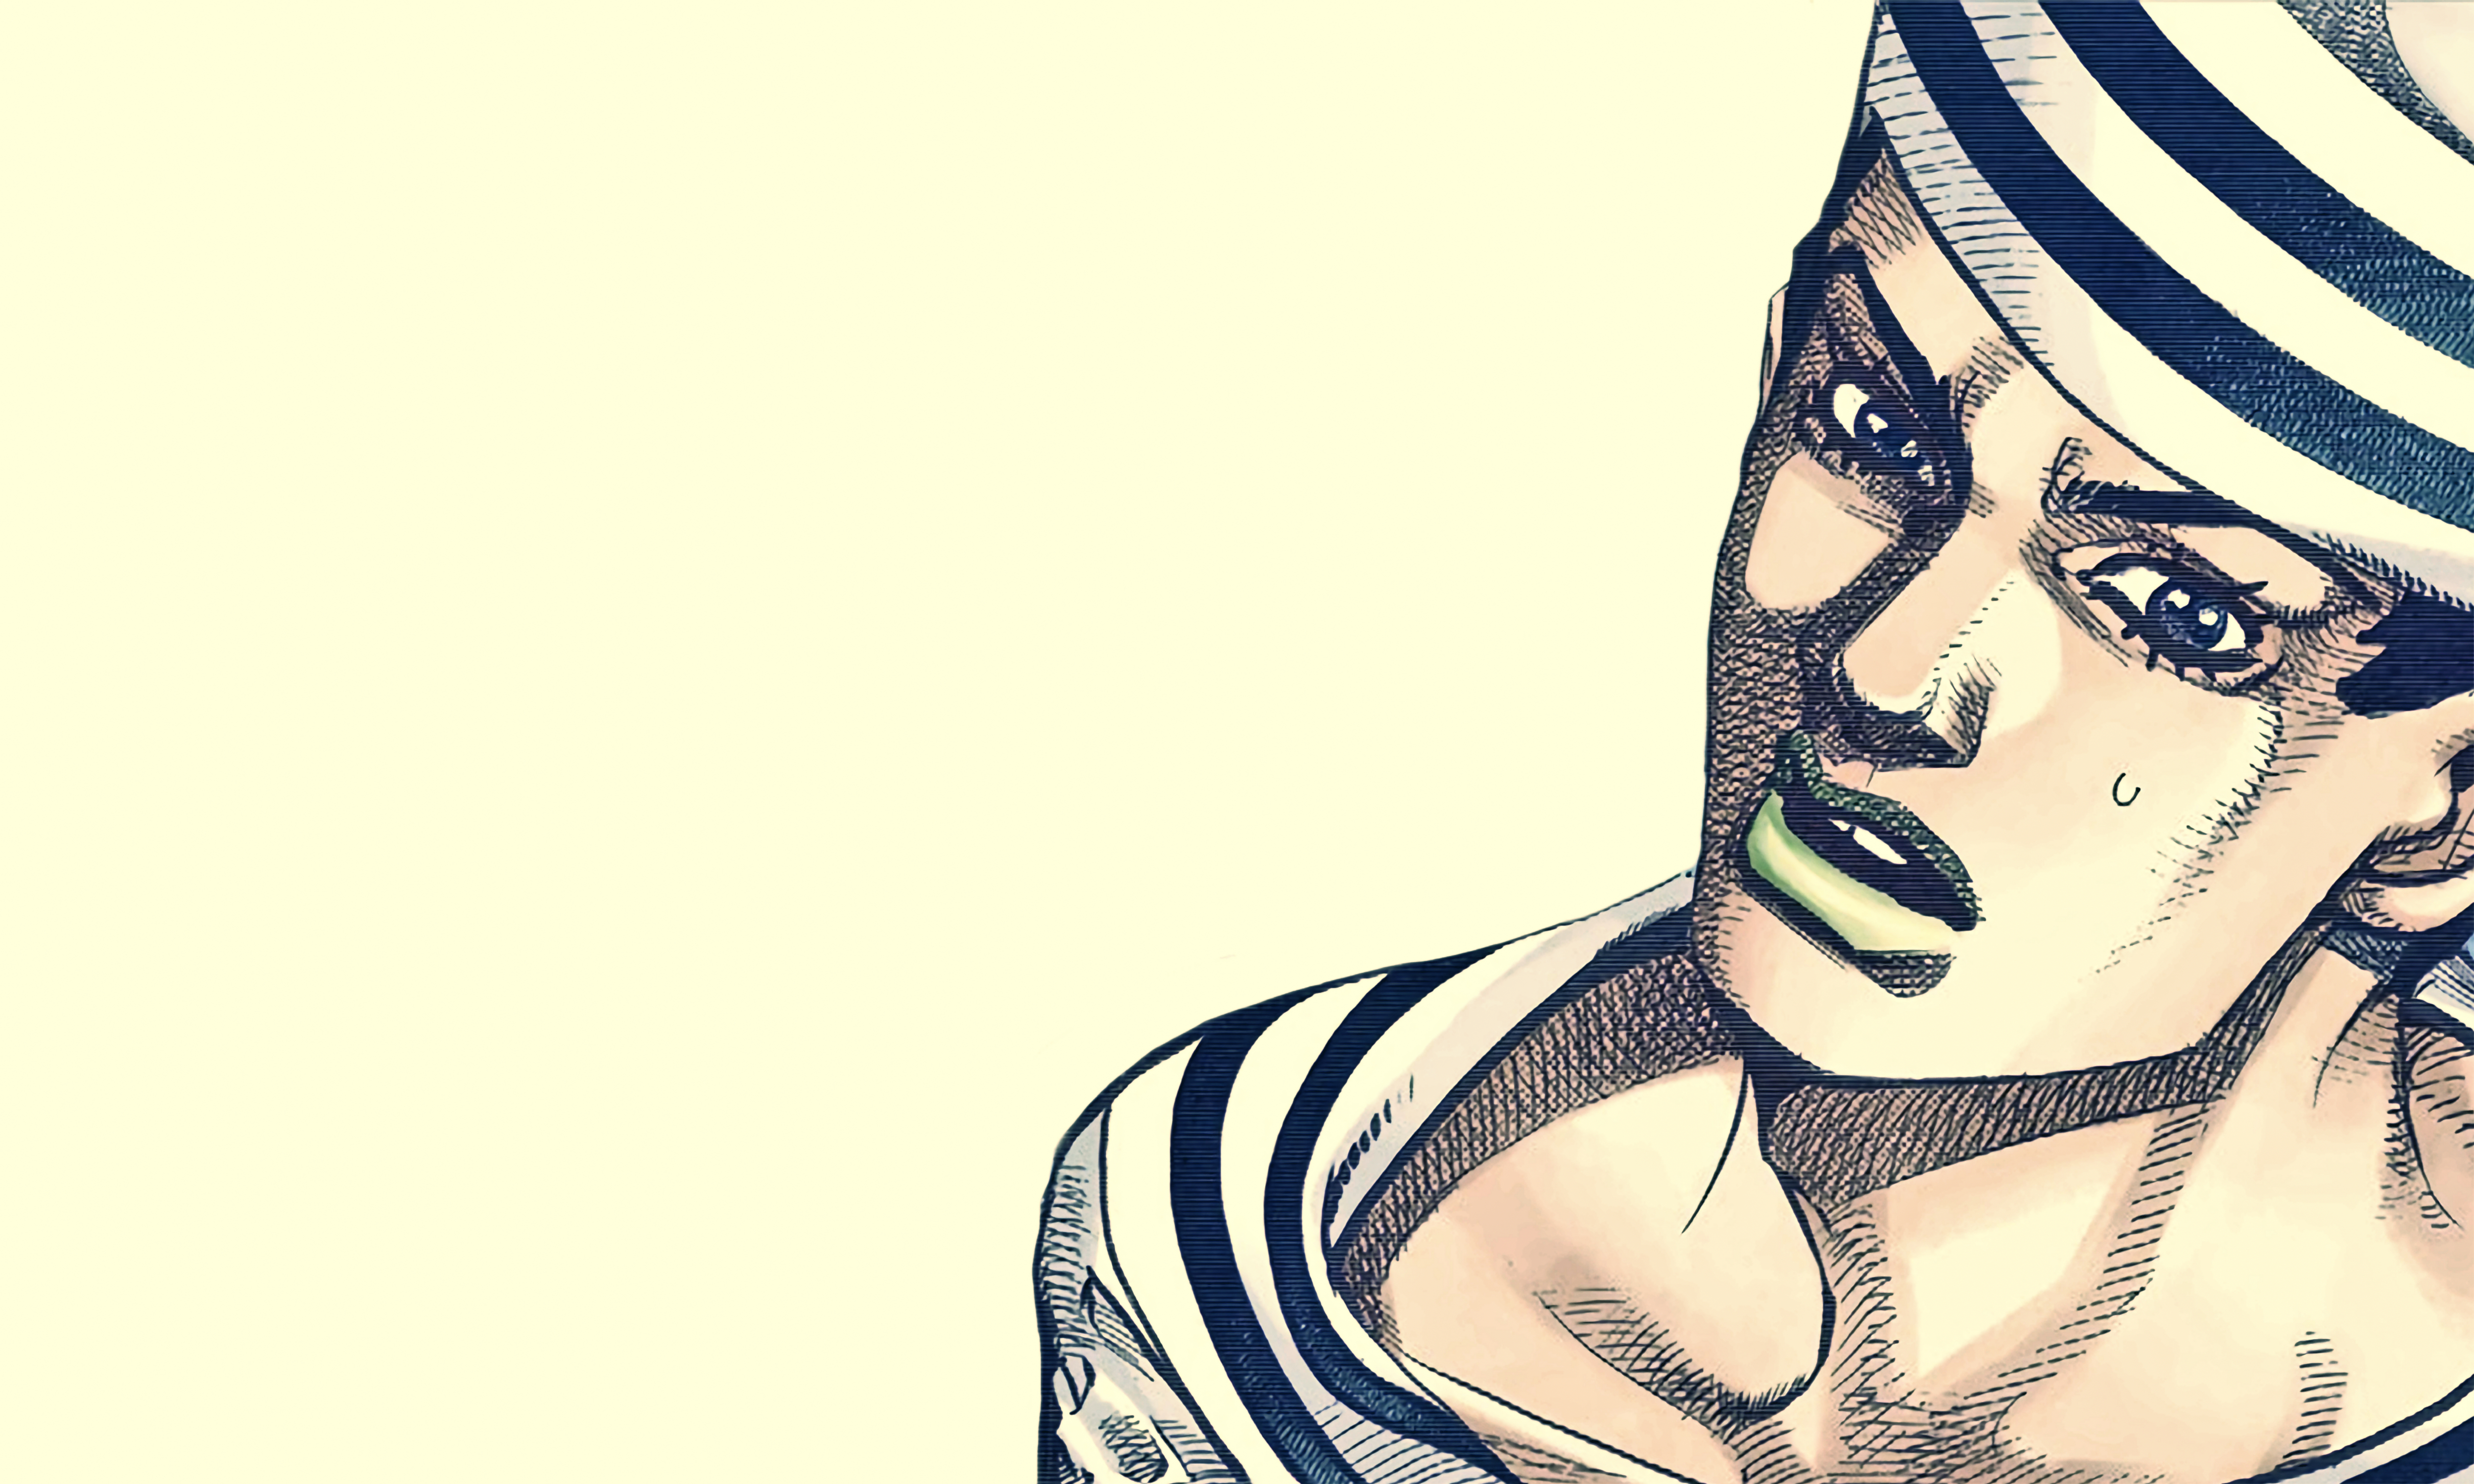 JoJolion A Sub Gallery By CrazyDiamond 5000x3000